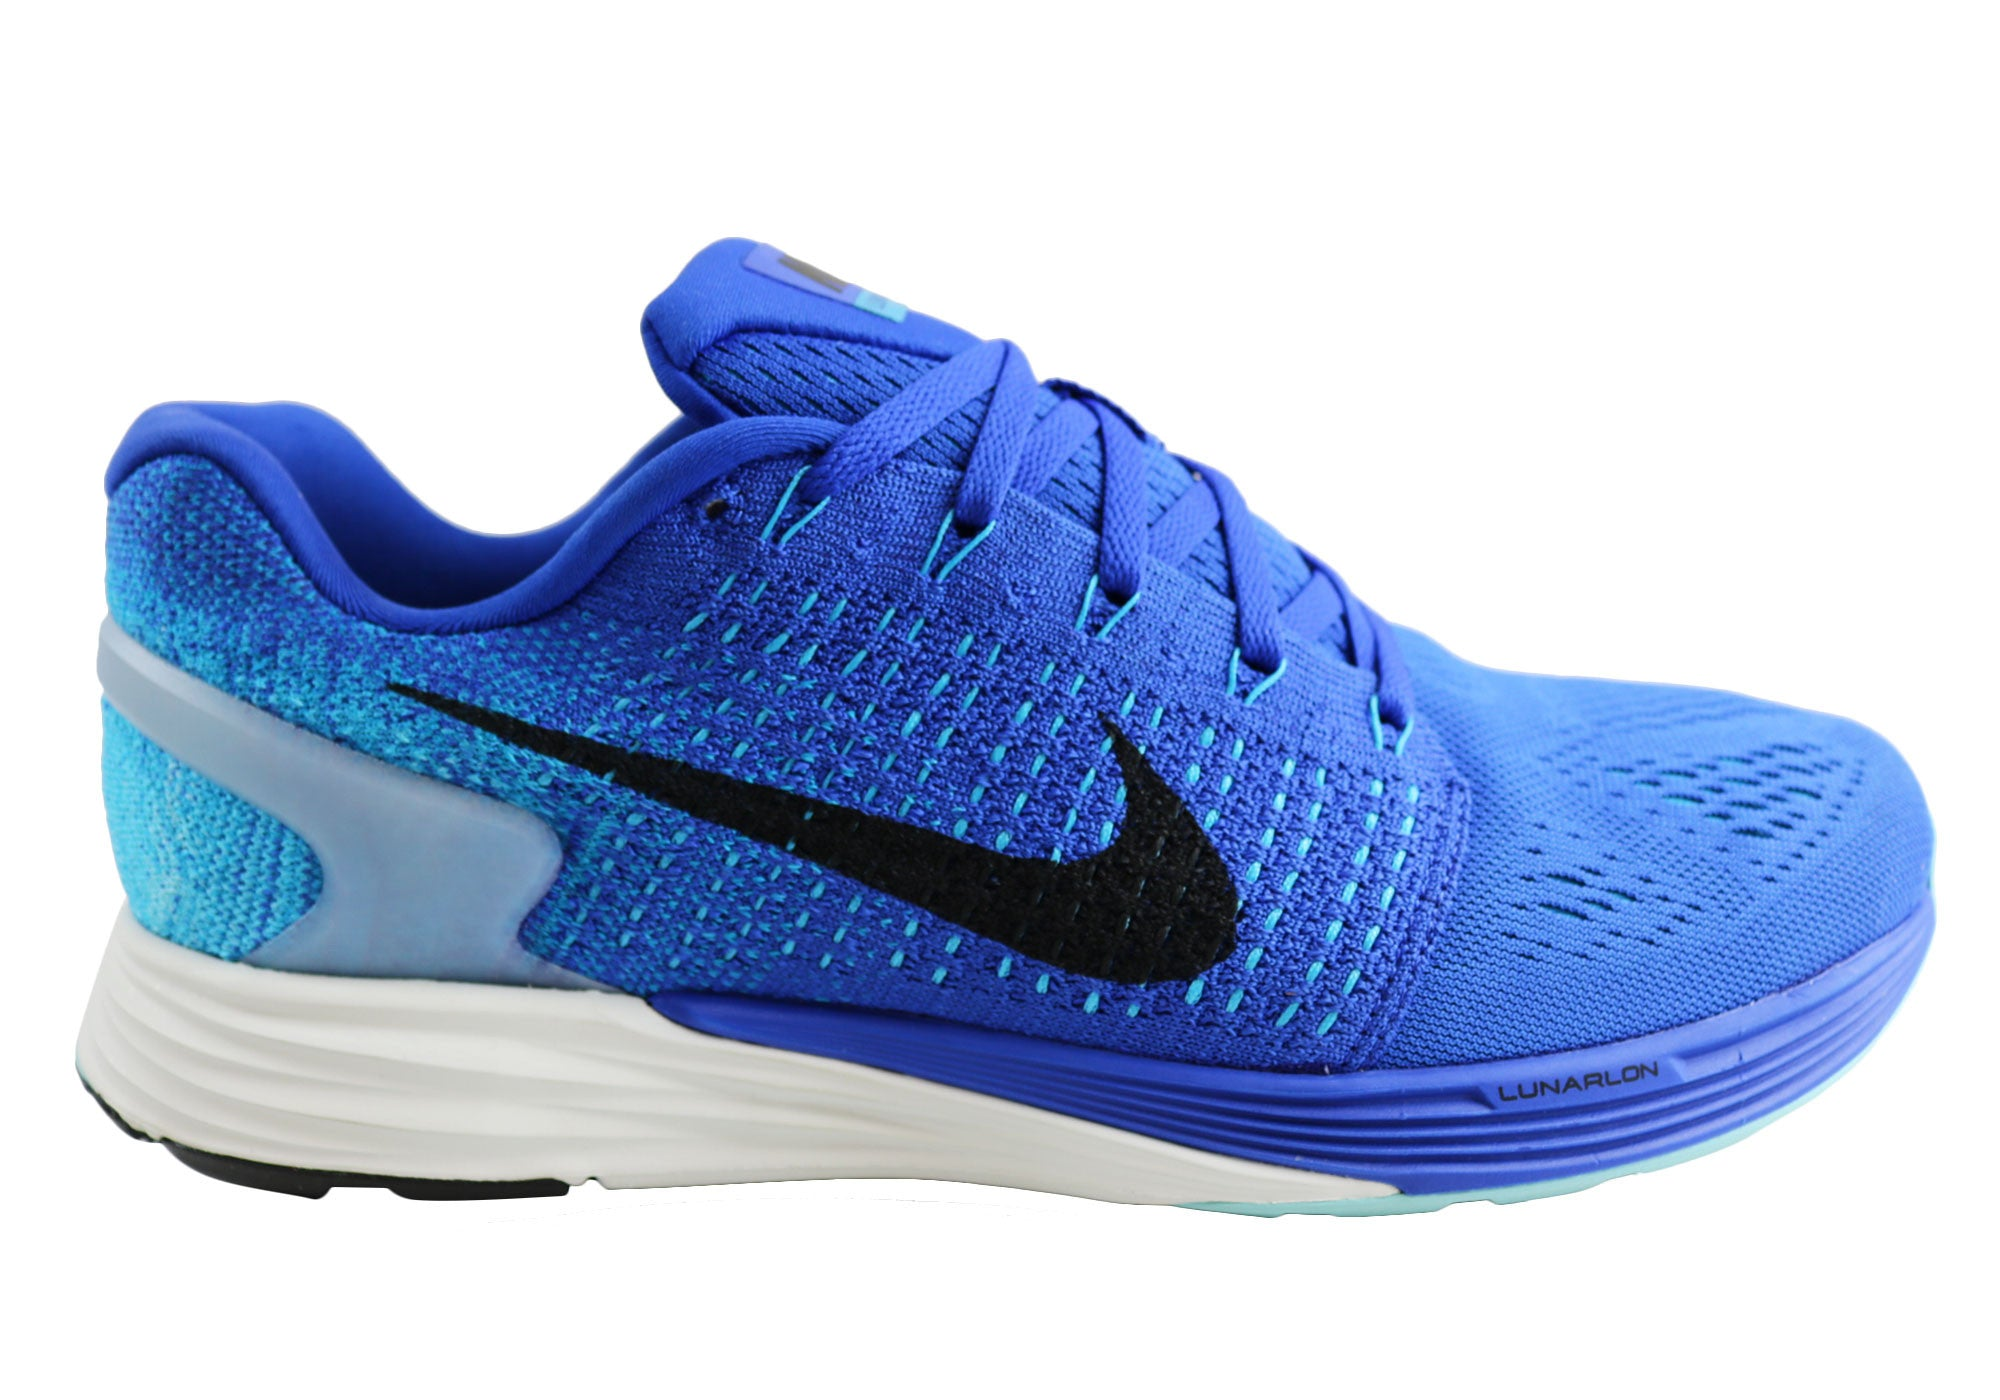 764fa1448bde Home Nike Lunarglide 7 Mens Cushioned Light Weight Running Sport Shoes.  Black ...